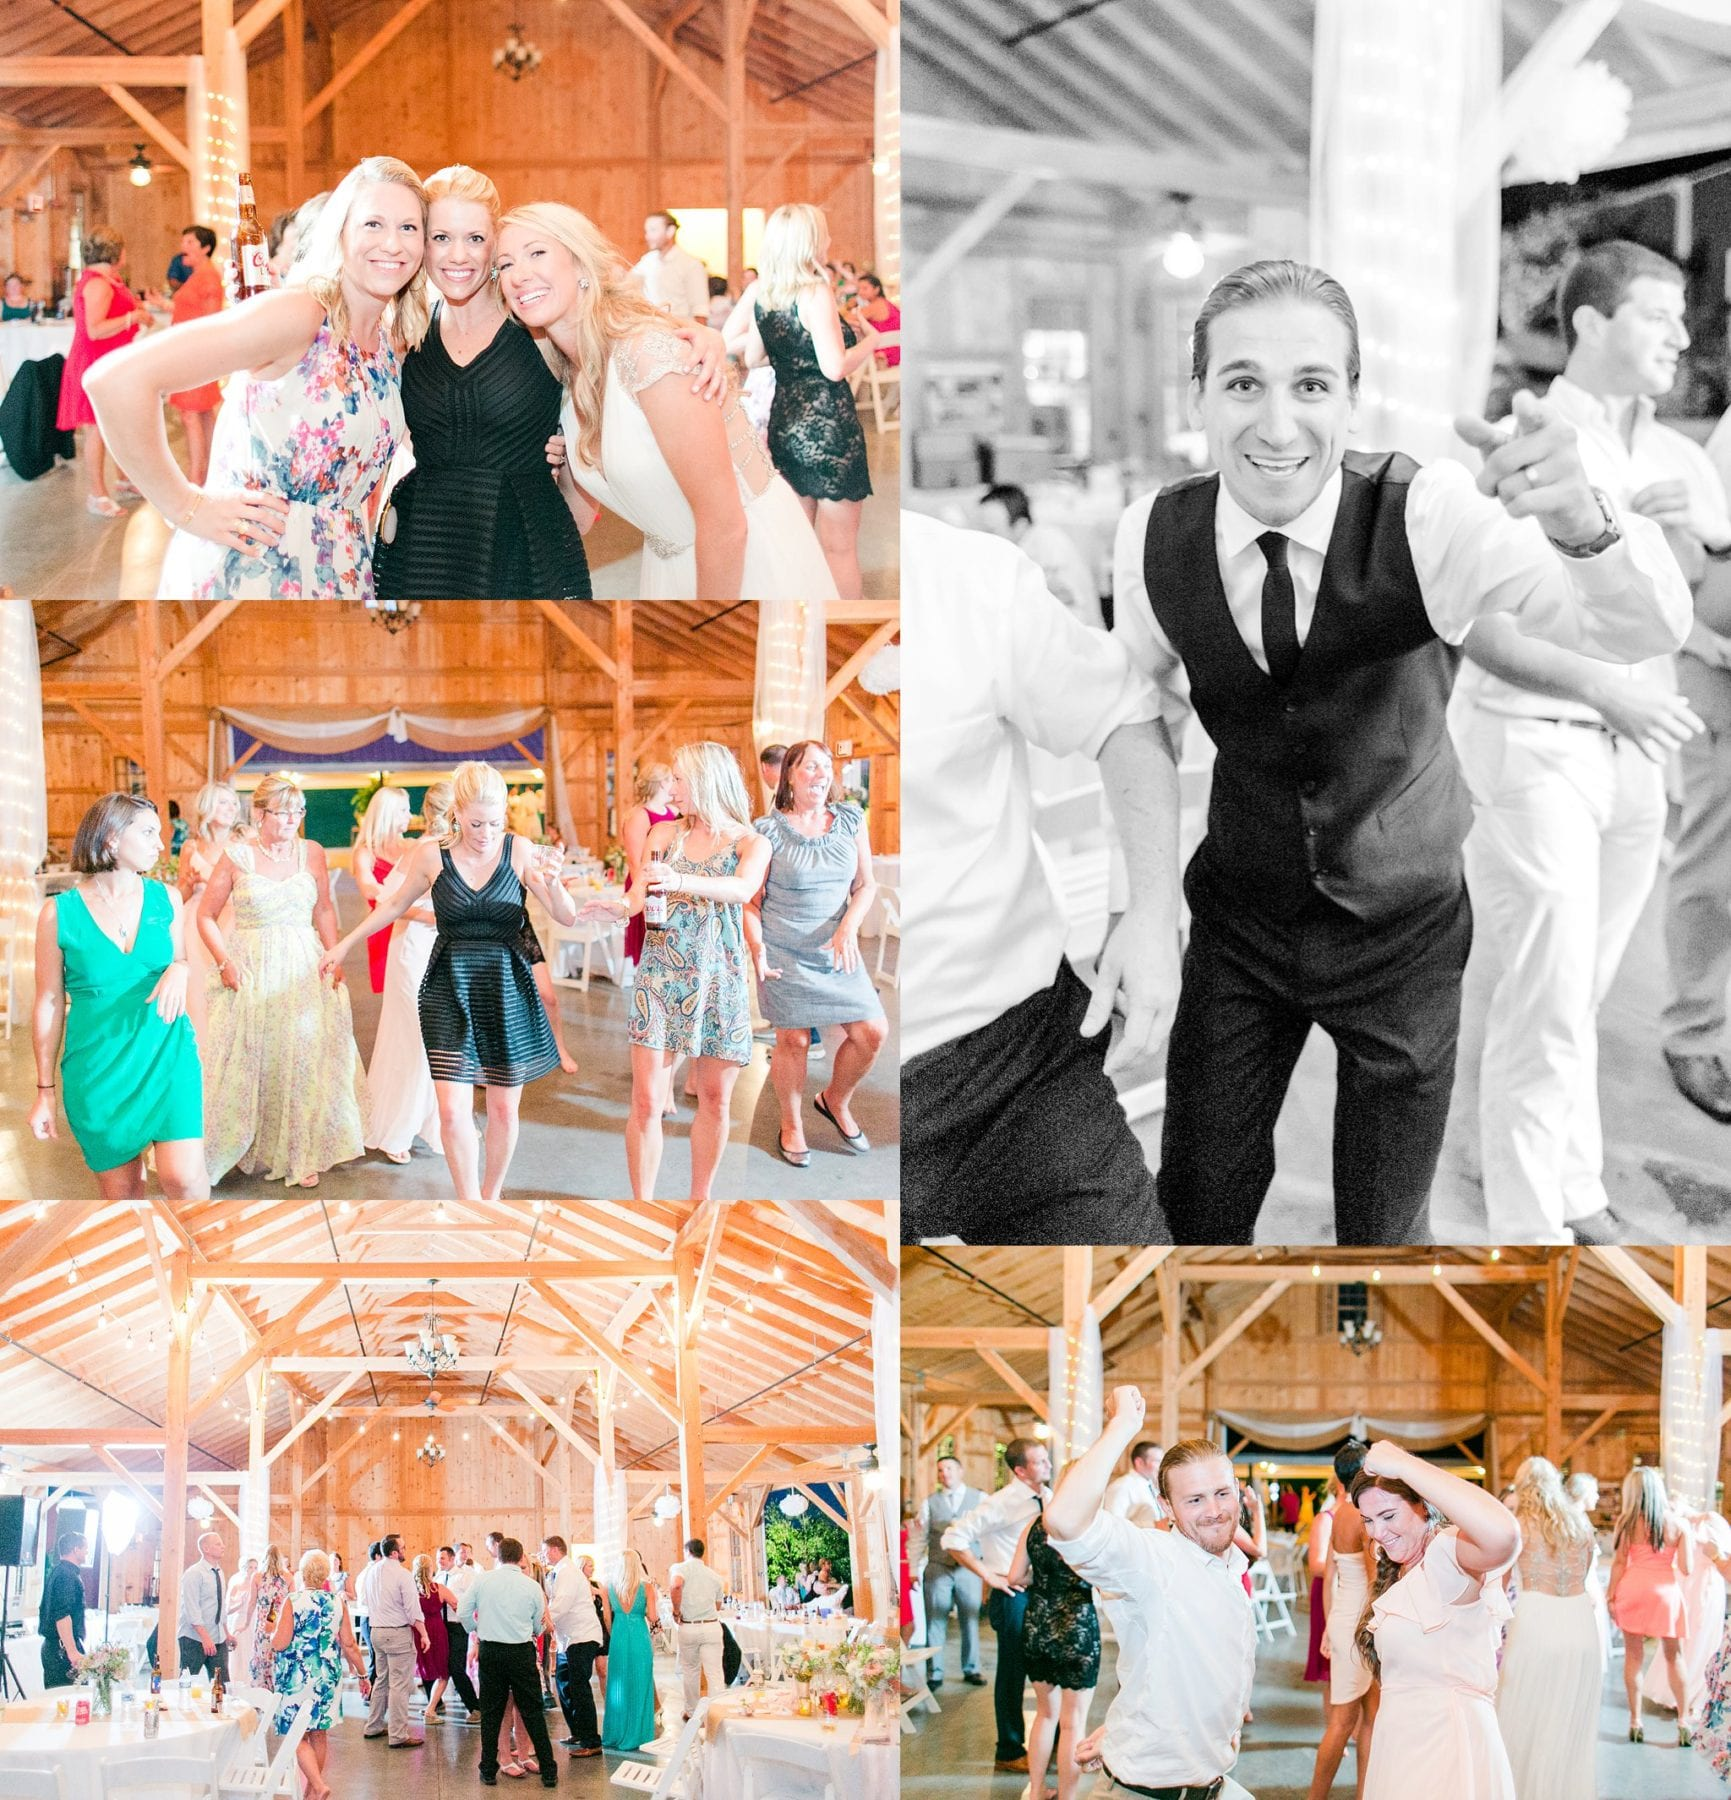 Pond View Farm Wedding Photos Maryland Wedding Photographer Kristen & Ryan Megan Kelsey Photography Blog-279.jpg